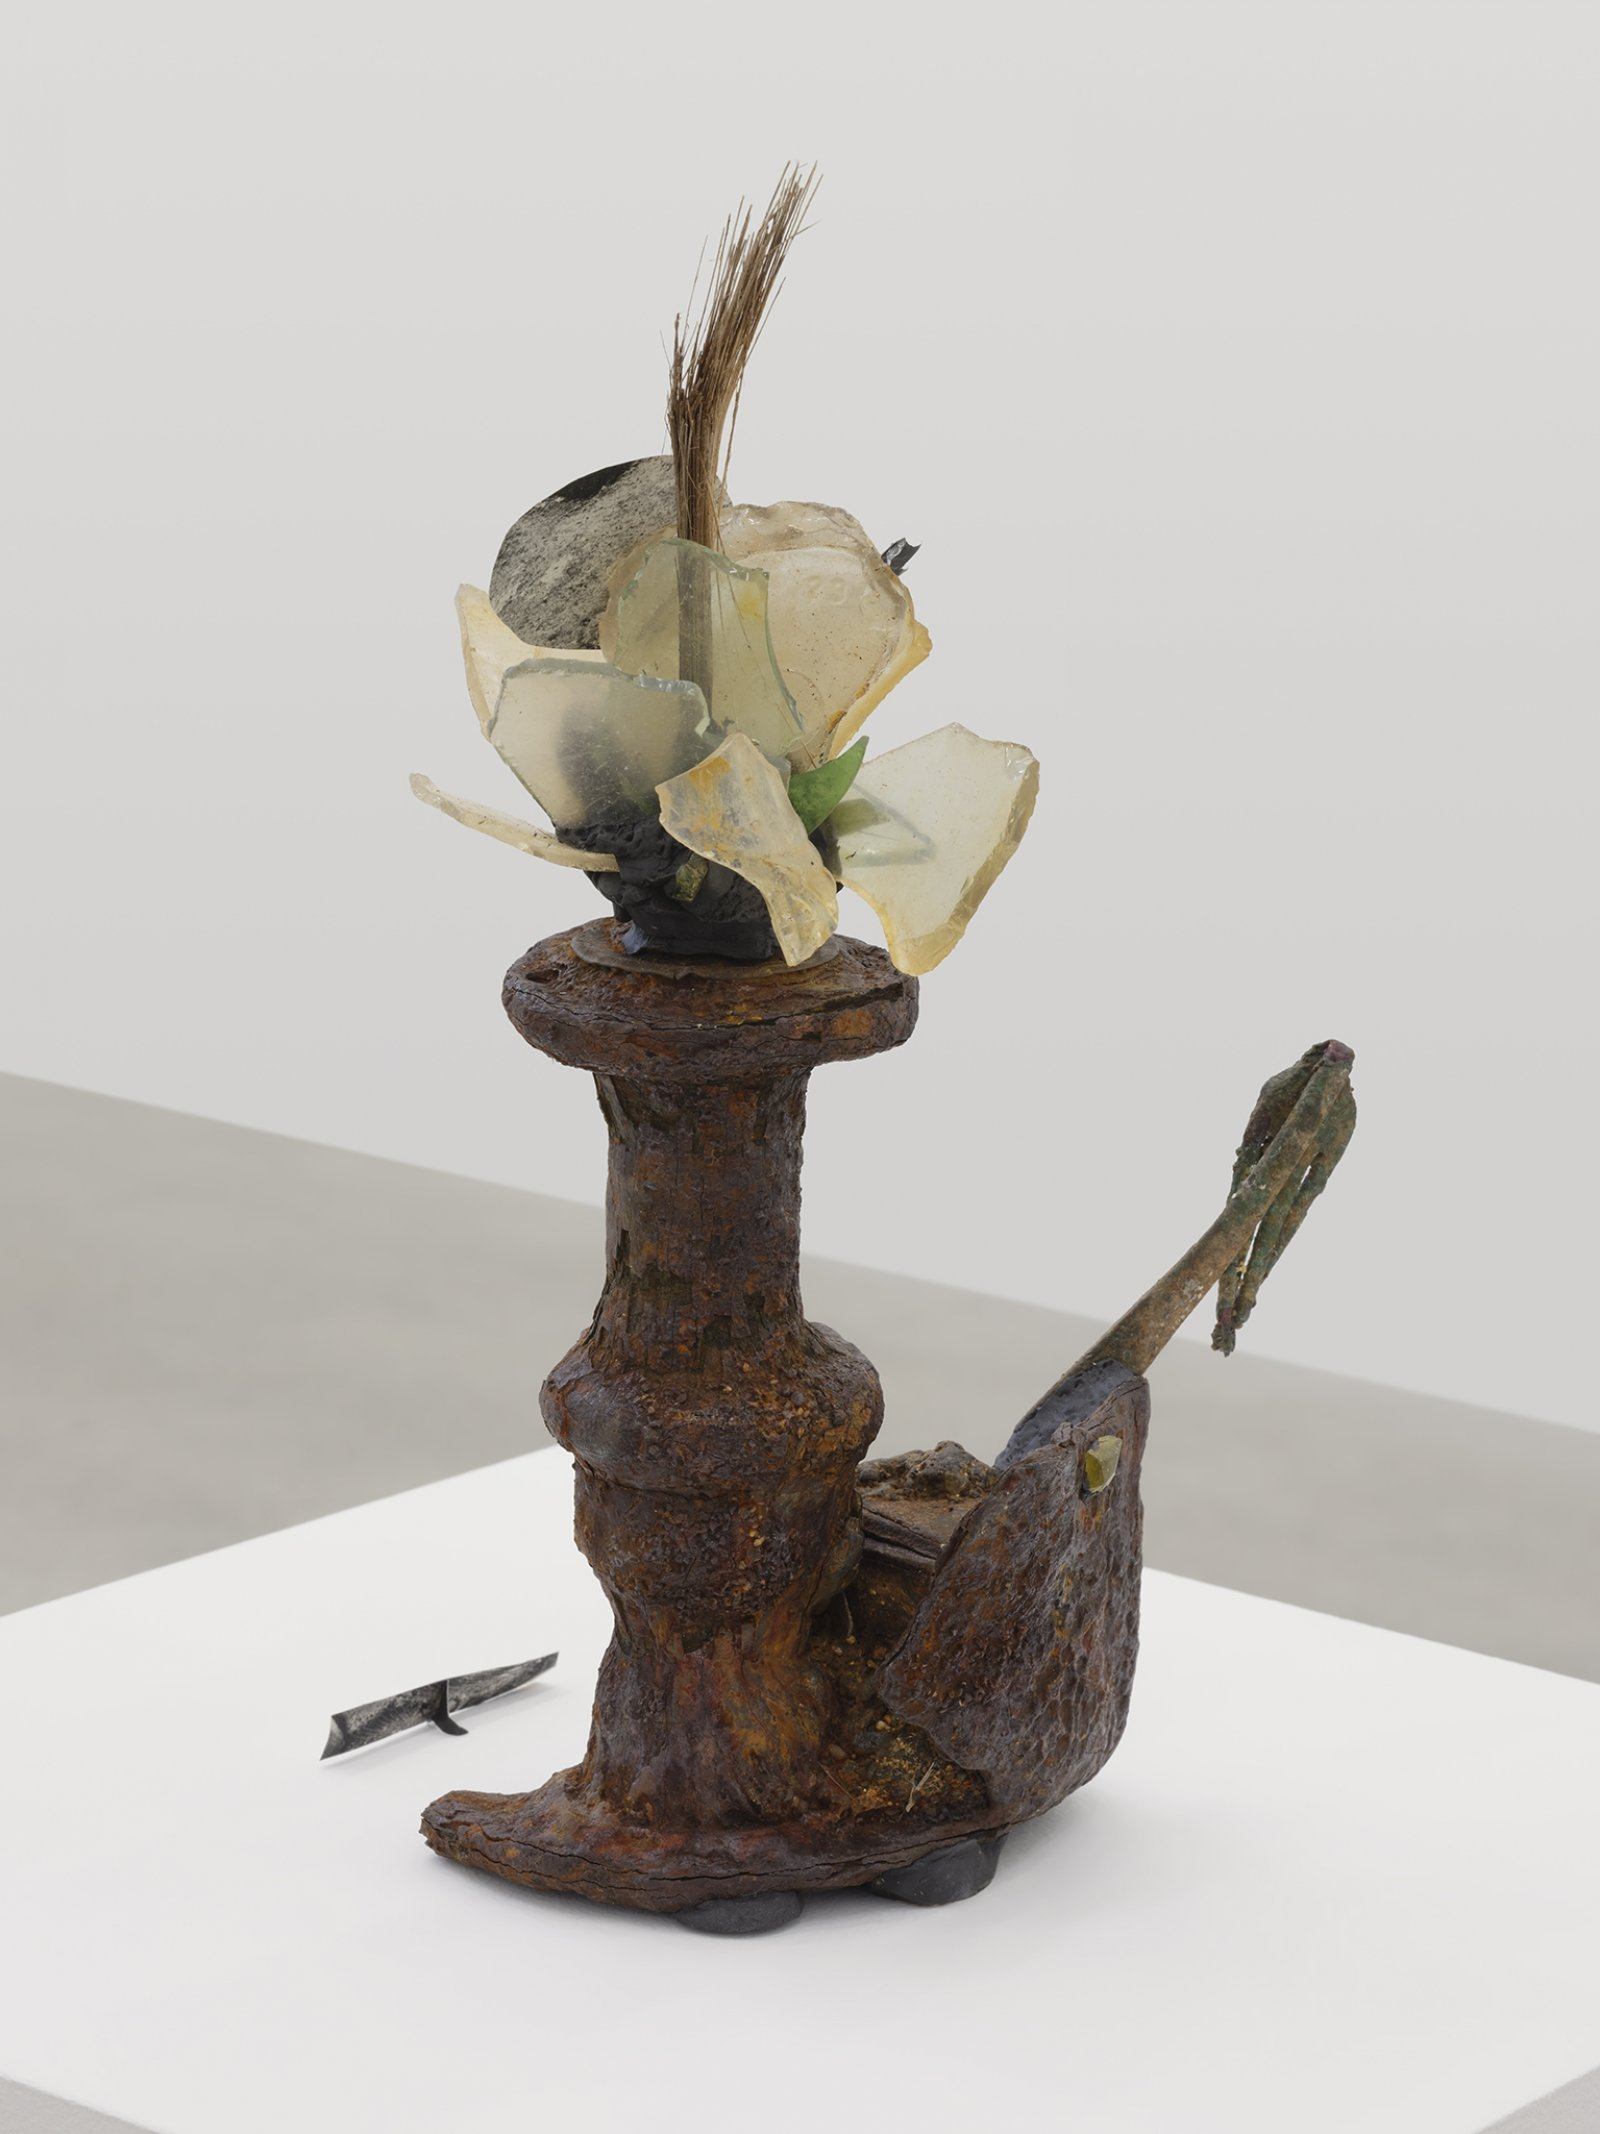 Geoffrey Farmer, Seven Pounds of Red Meat, 2019, metal, glass, coconut, paper, 14 x 9 x 6 in. (36 x 23 x 15 cm)